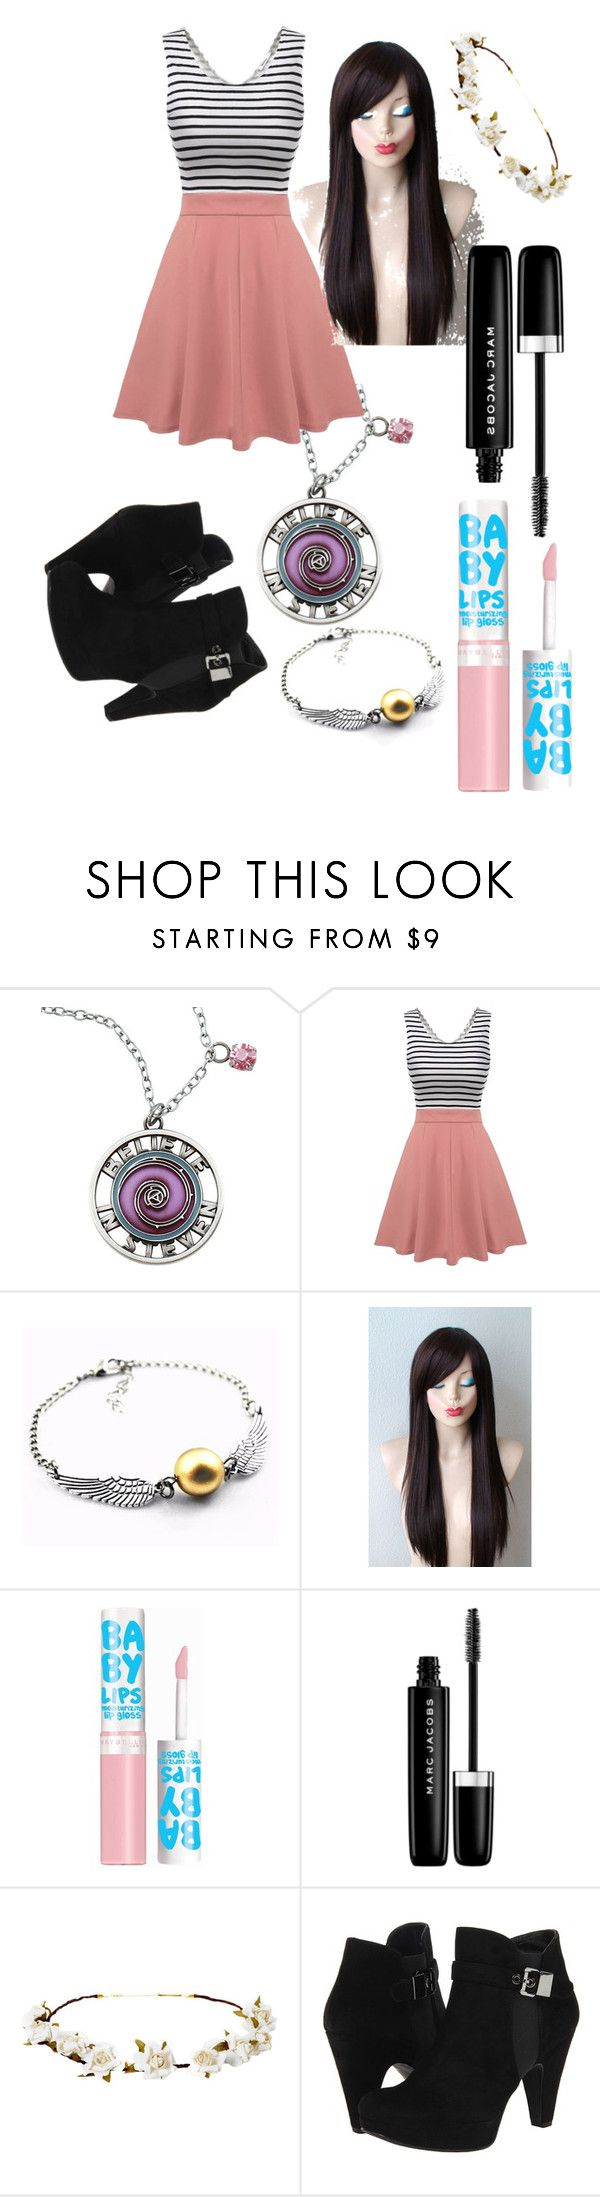 """""""Untitled #414"""" by louis-tomlinson-fan-226 ❤ liked on Polyvore featuring Cartoon Network, Maybelline, Marc Jacobs, Cult Gaia and Stuart Weitzman"""